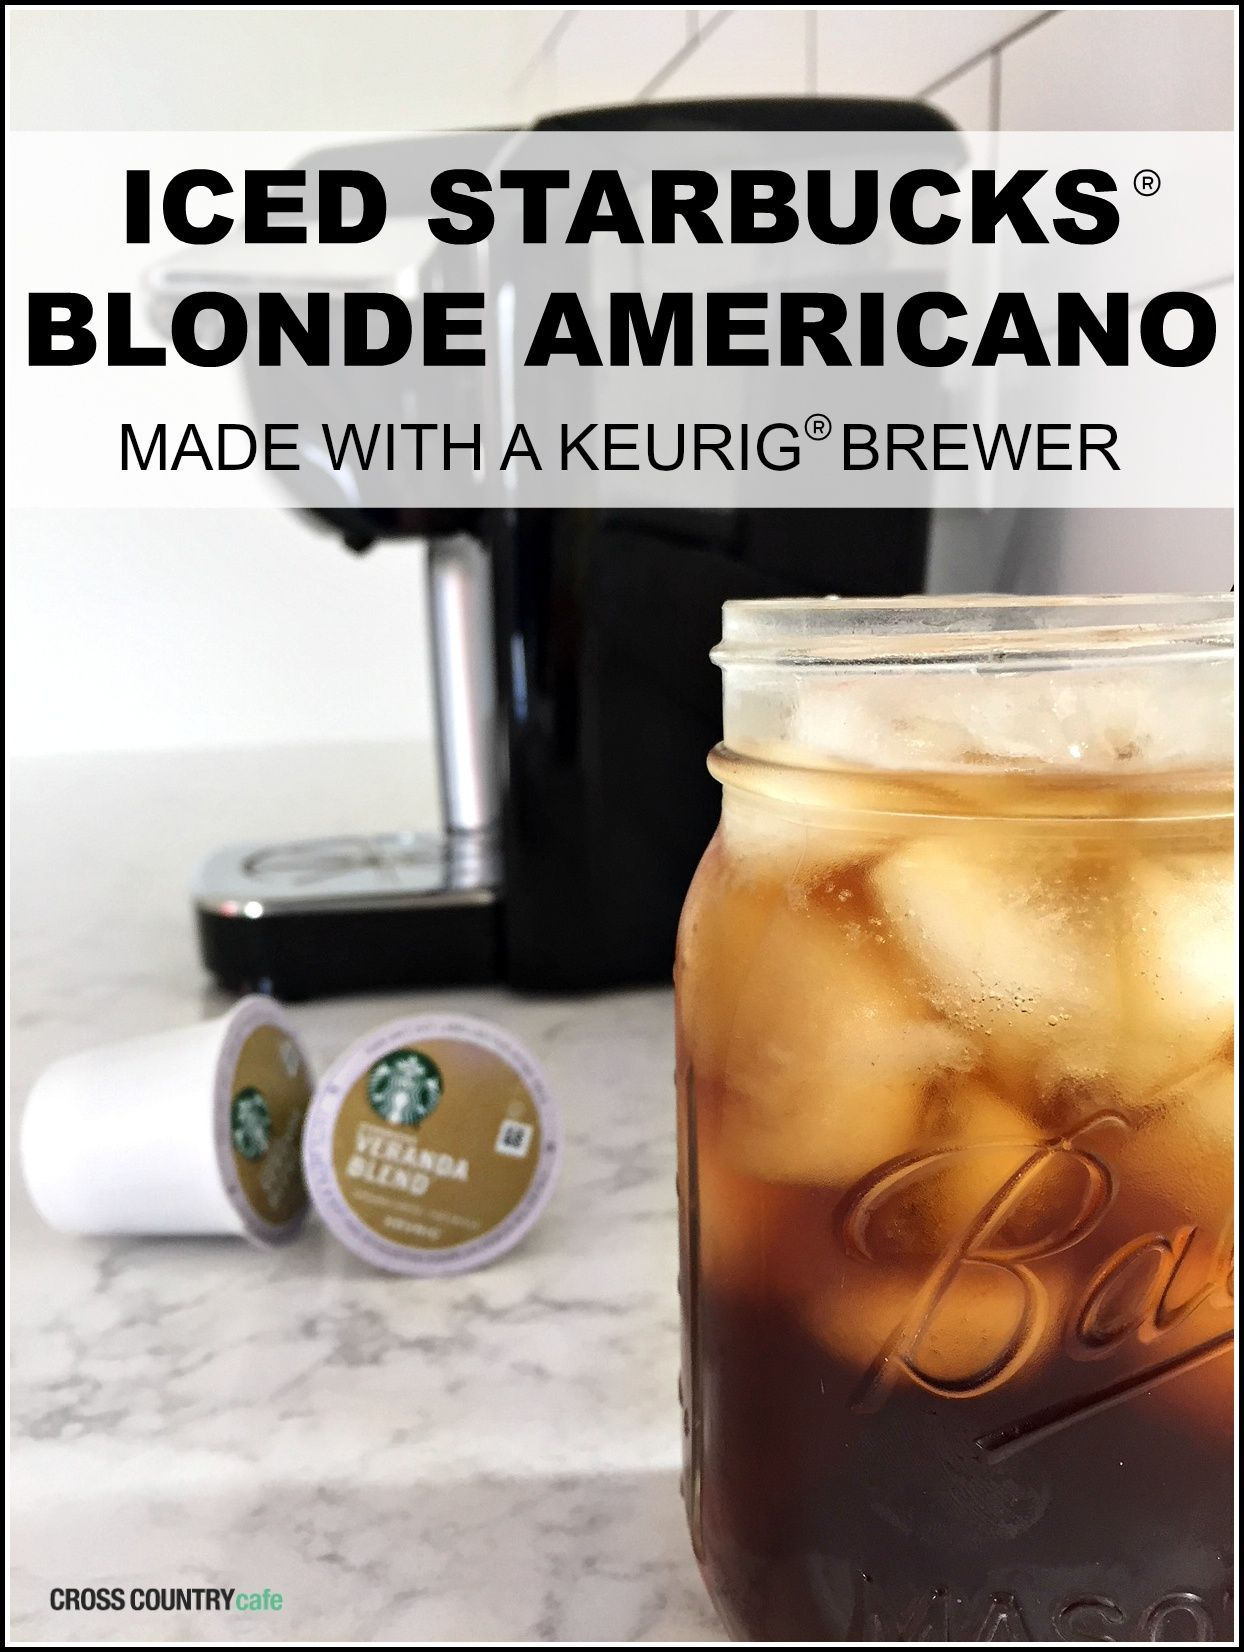 How to make an iced starbucks blonde americano with a